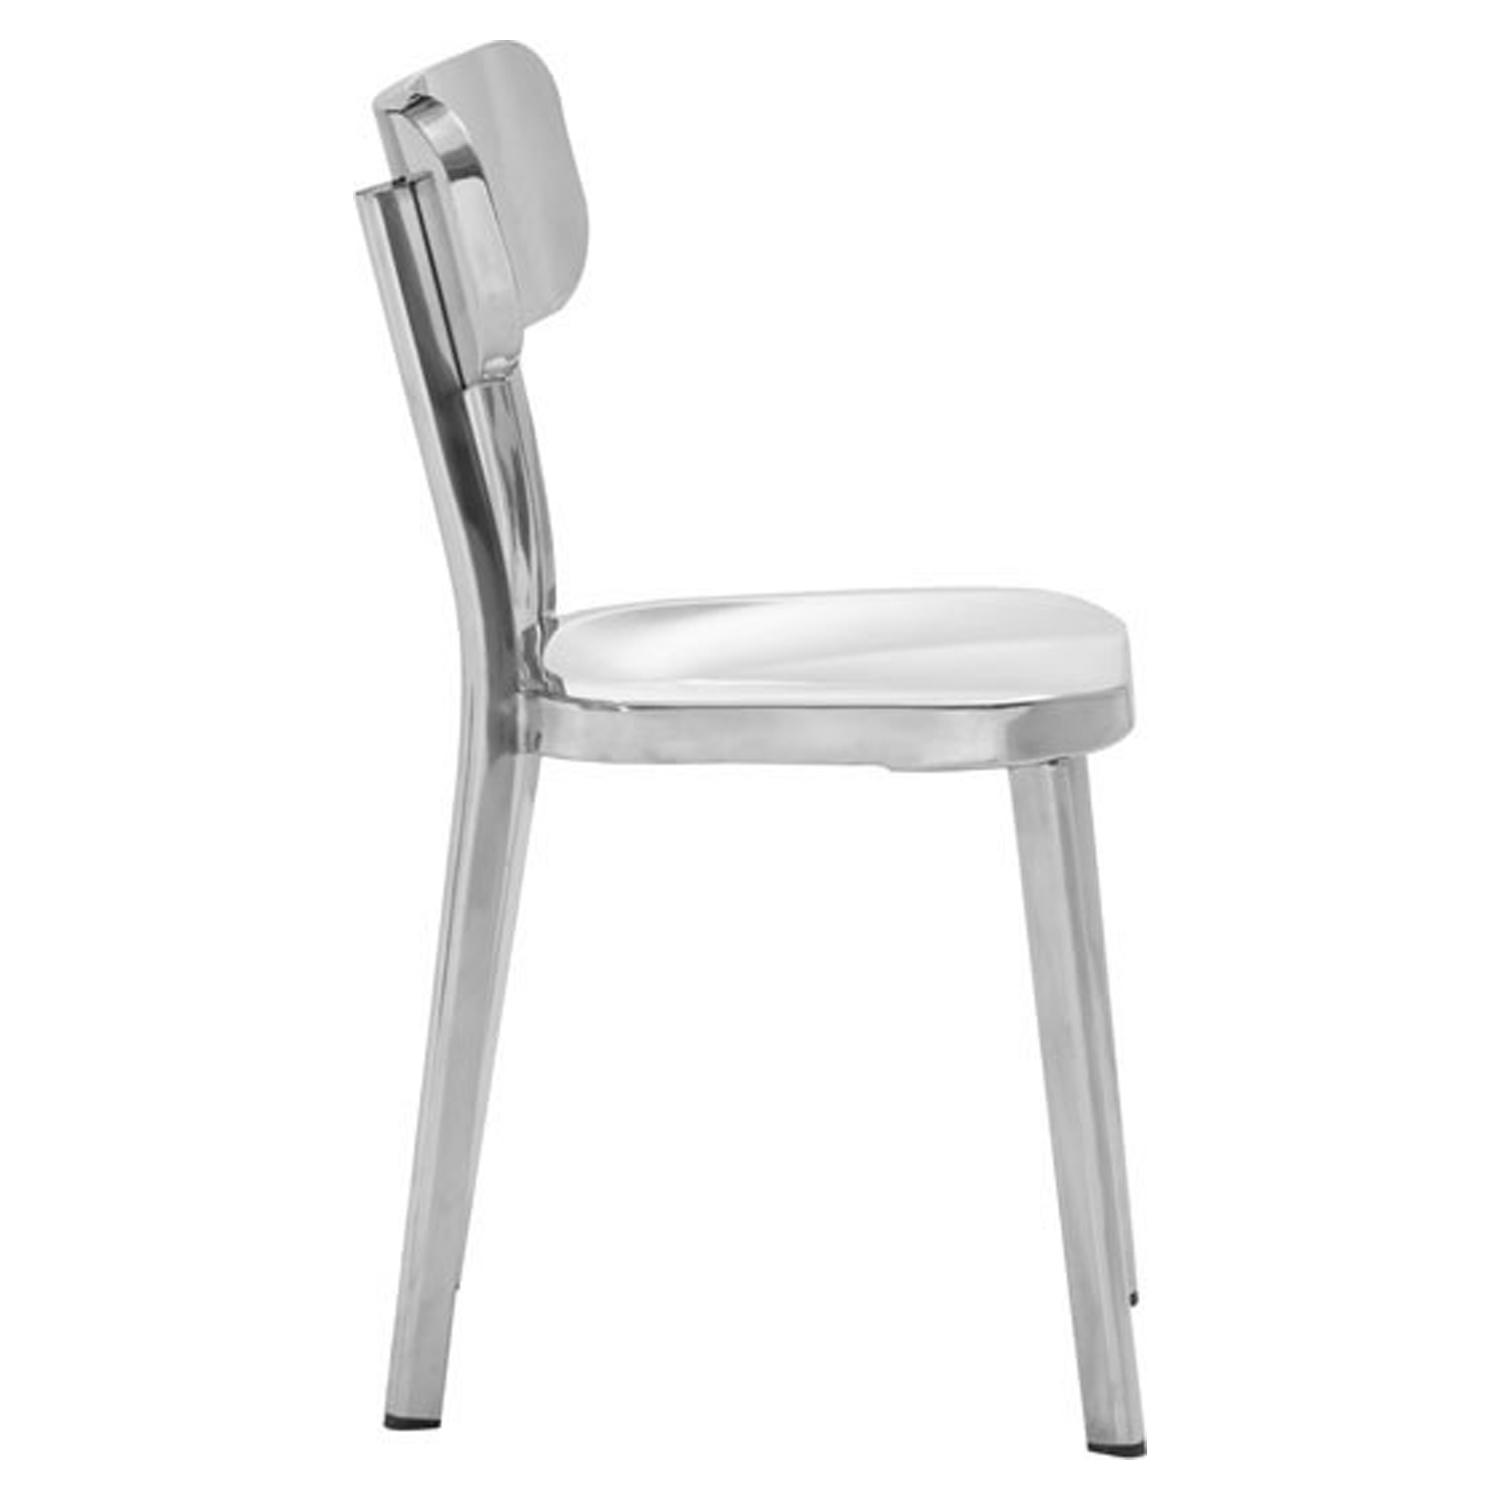 Winter Dining Chair - Stainless Steel - ZM-100301